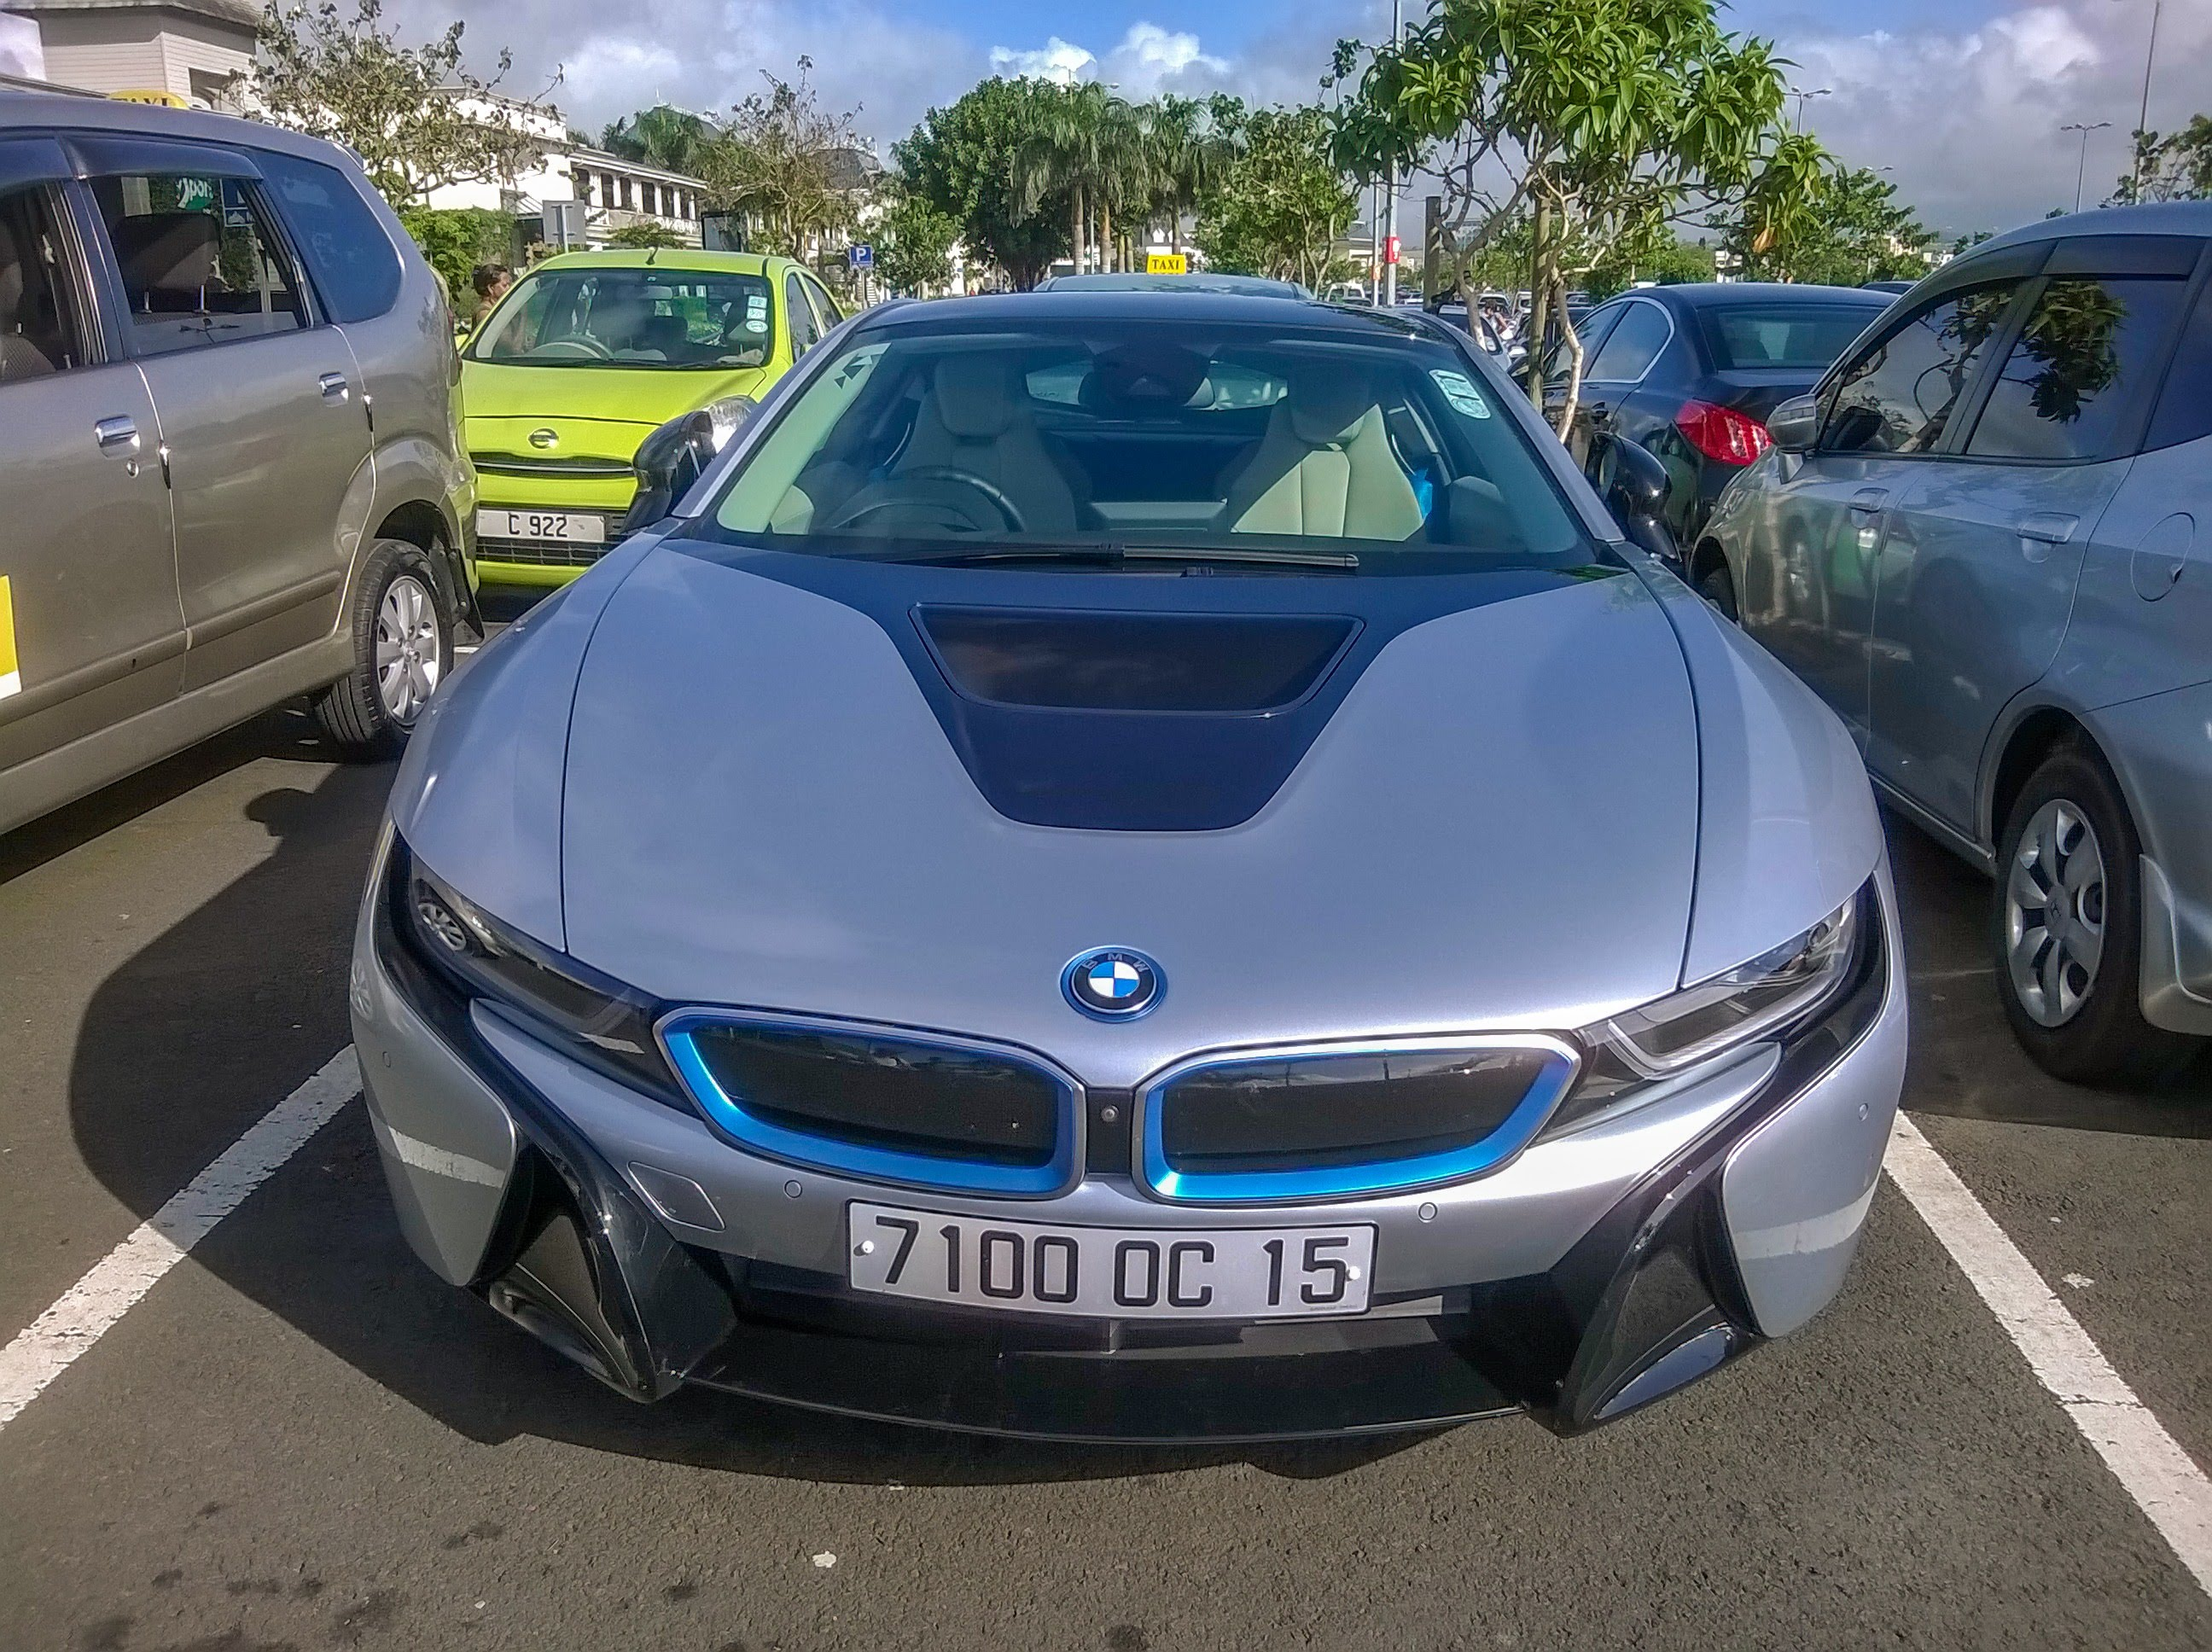 Car for Sale Mauritius Awesome Bmw I8 Spotted at Bagatelle Mall Of Mauritius • Walkaround some